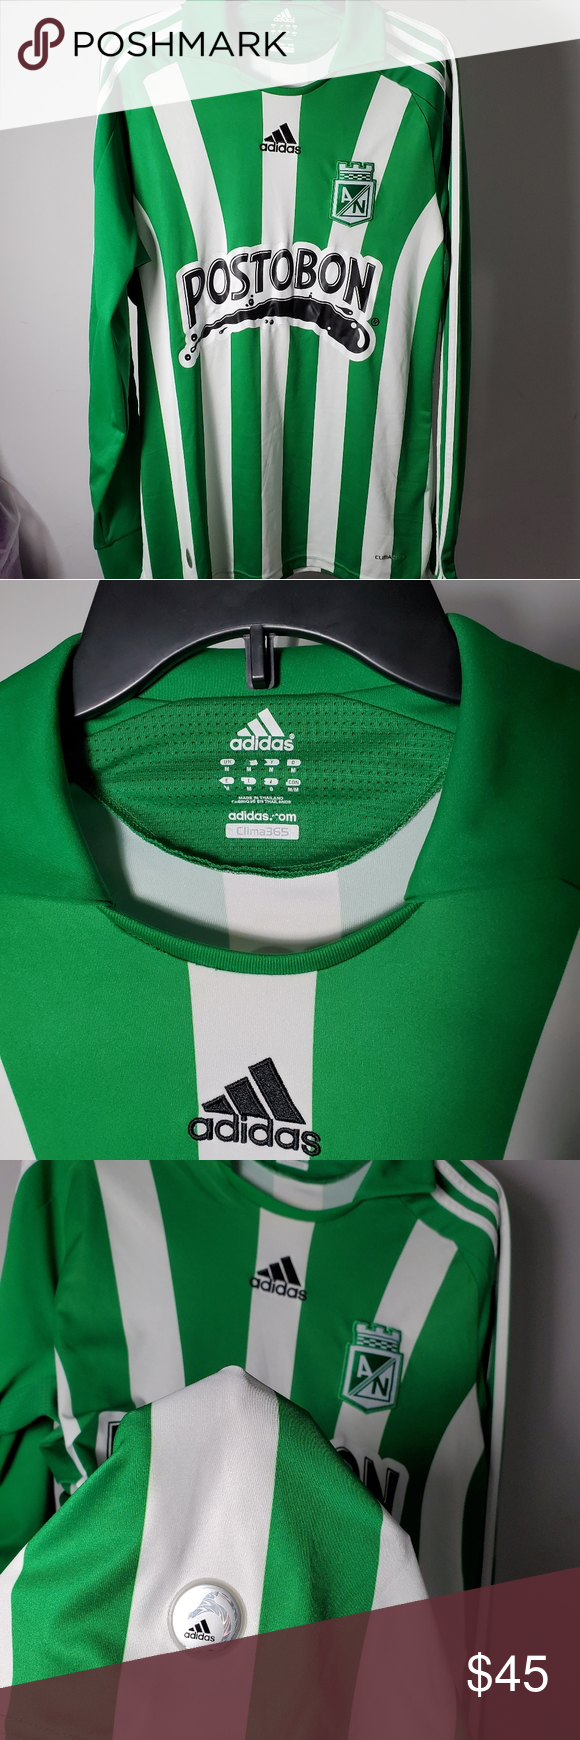 Formular Universal Gobernador  Adidas Atletico Nacional Jersey Green, M Adidas Atletico Nacional NA -  Medellin Colombia Green and white stripes S… in 2020 | Colorful shirts,  Adidas green, Clothes design